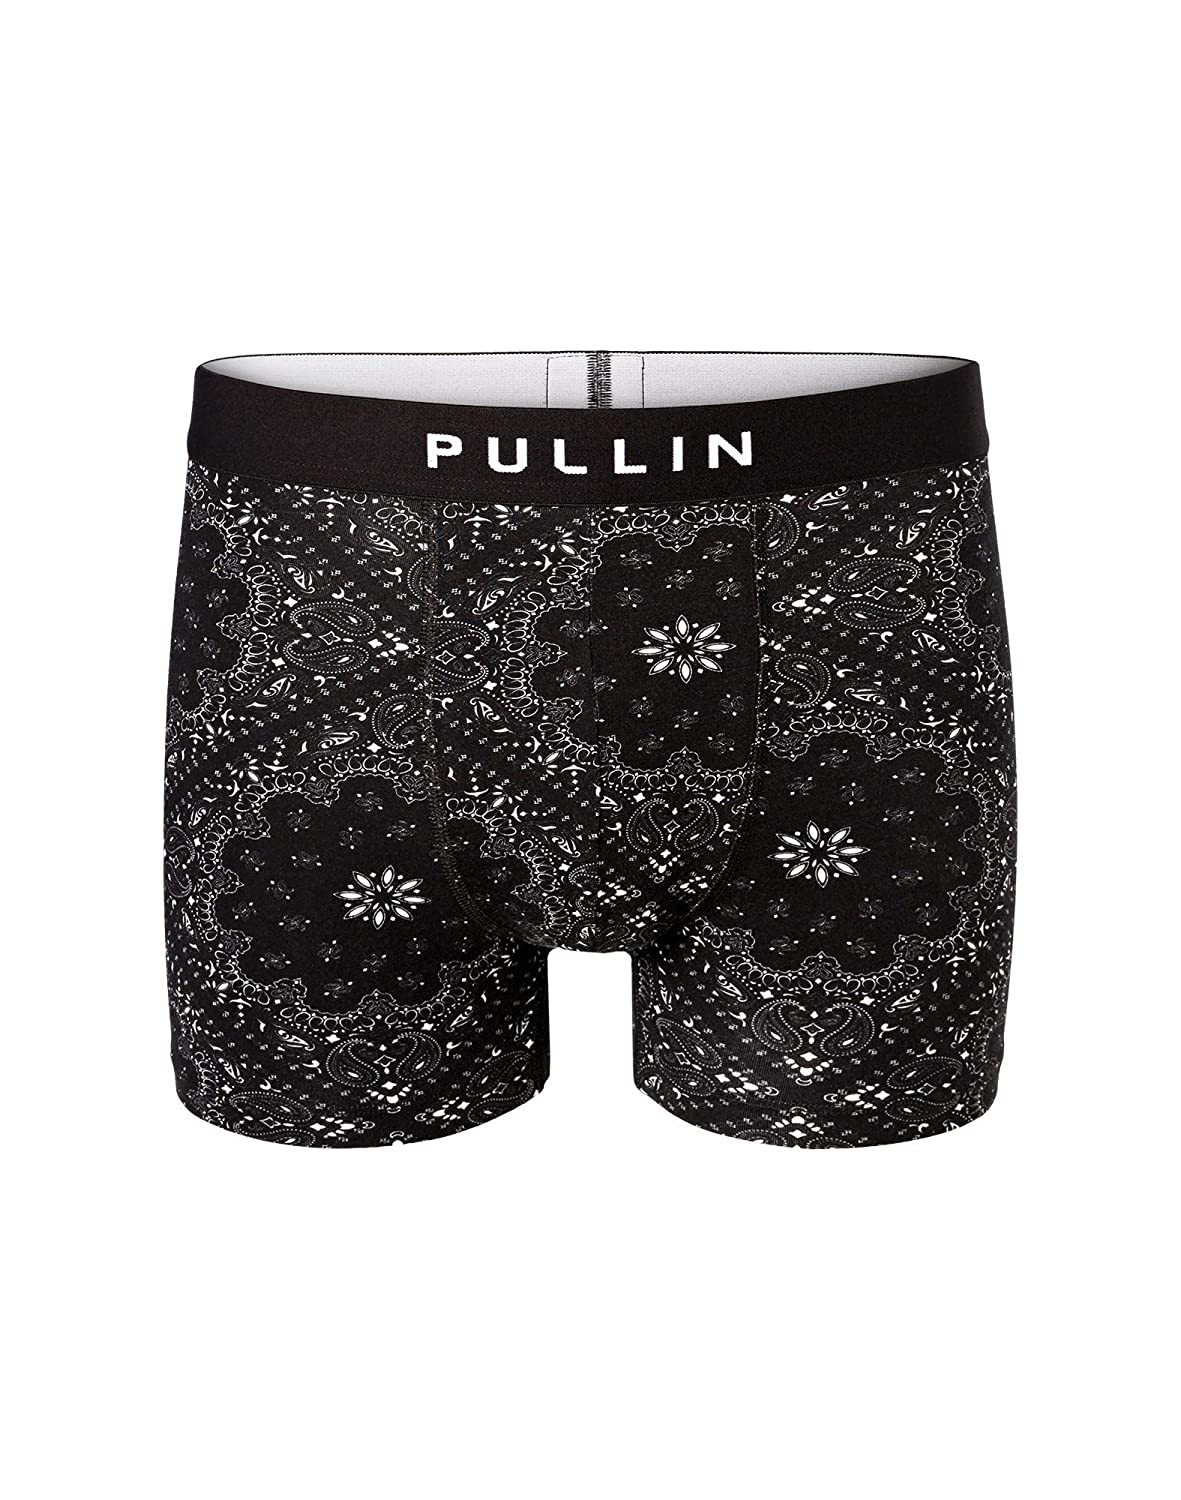 TALLA M. Pull-in Bóxers - para Hombre